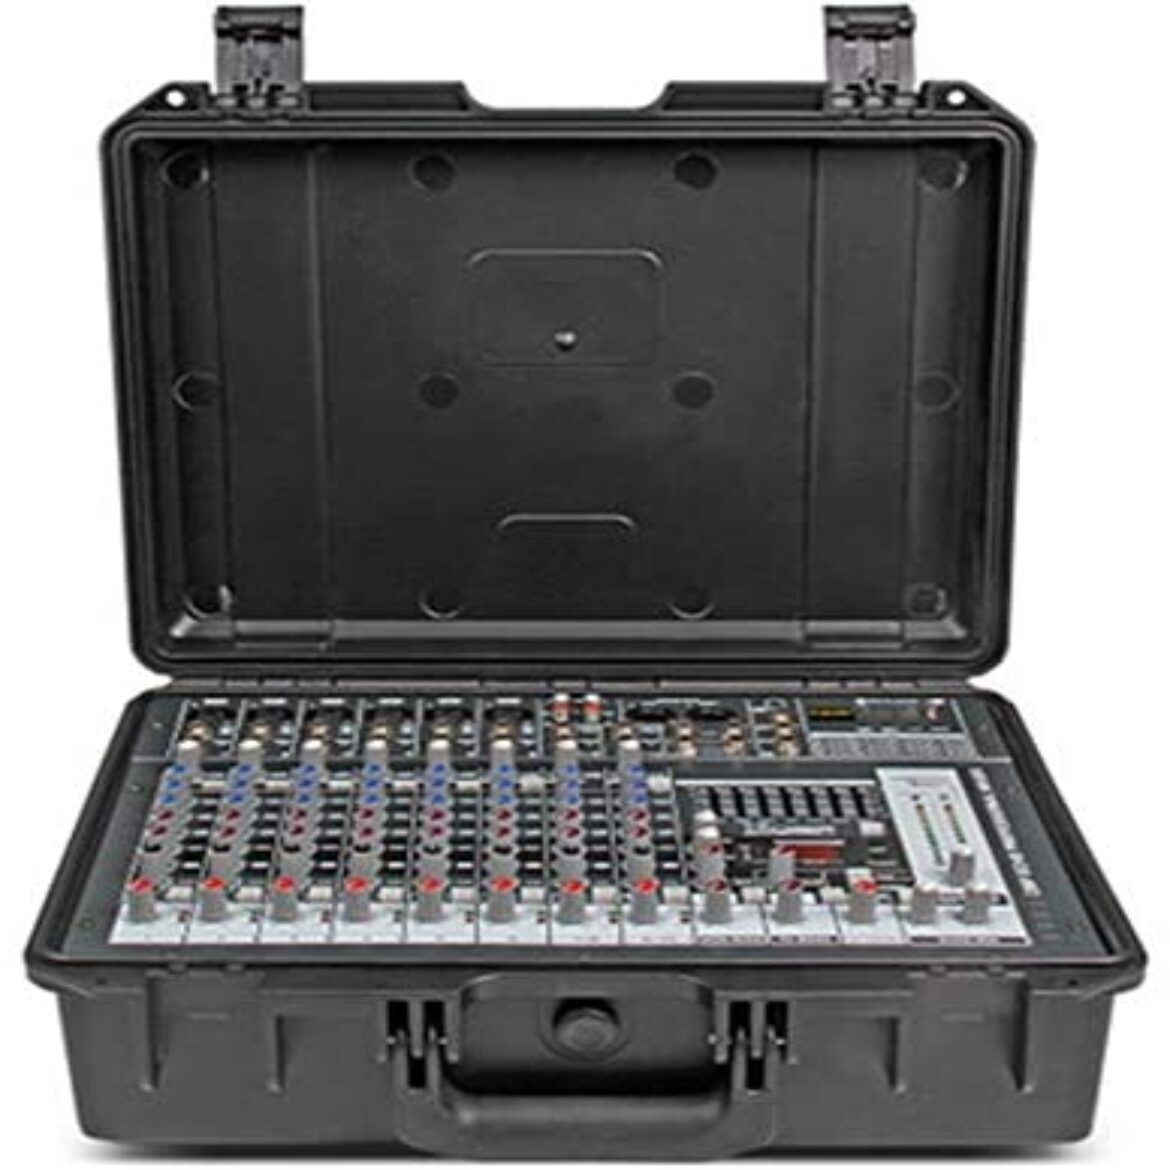 Tune Mixer Expert Suitcase Constructed-in Outdoors Console Transportable Powered Mixer With Amplifier 10 Channels & 300W x 2 Amplifier for warmth and musical sound ( Shade : C1 , Size : 380x285x145MM )